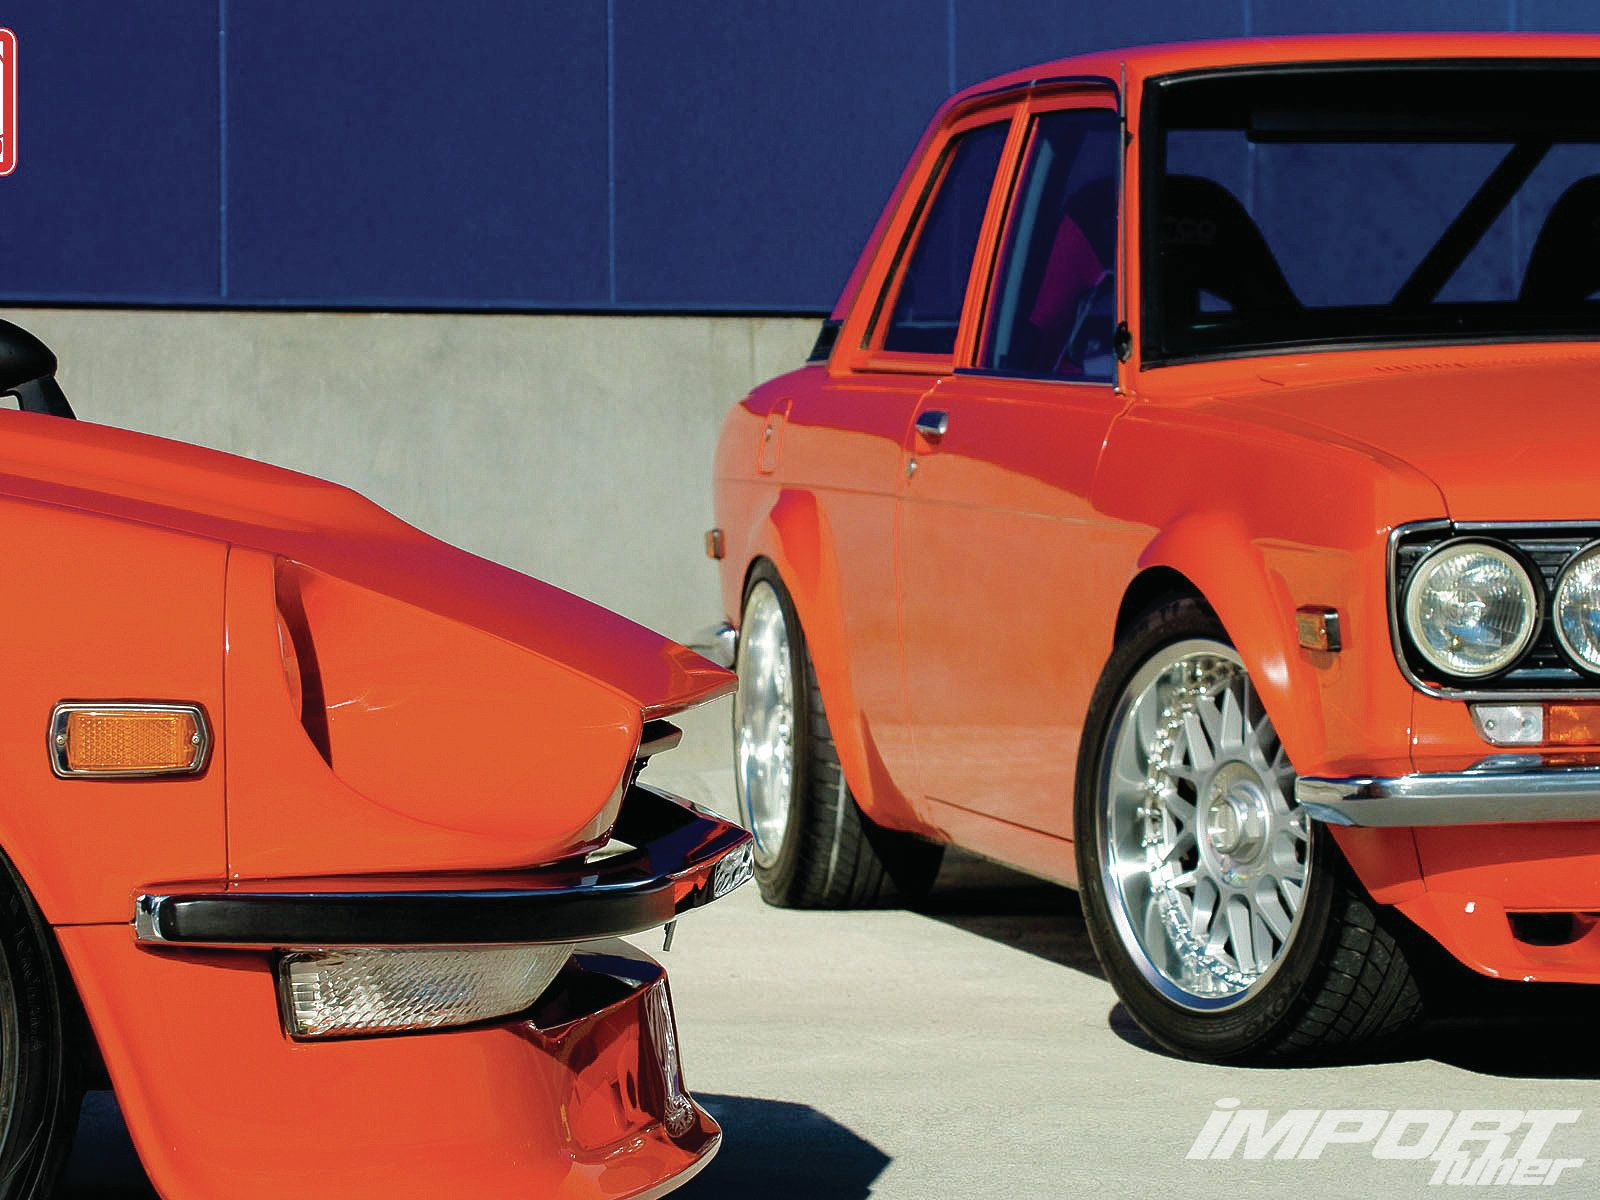 Top 20 Old School Rides Datsun 1200 B110 | Datsun / Nissan ...